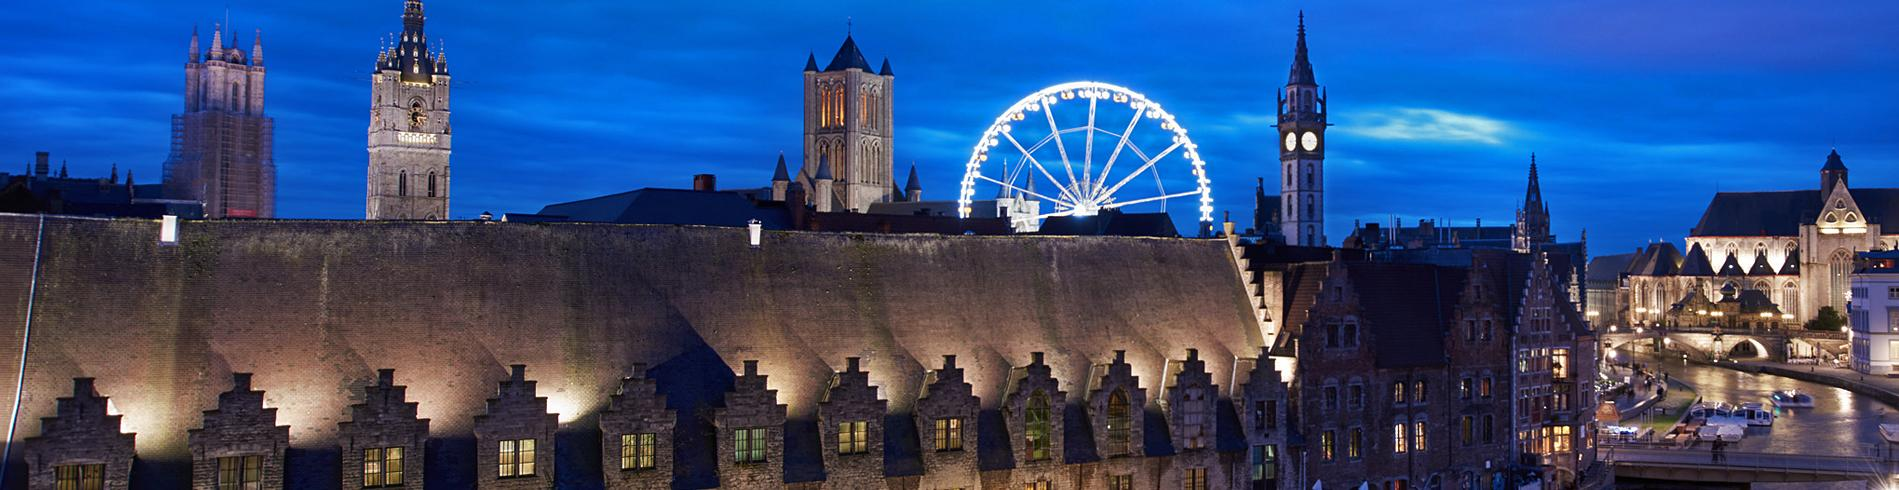 Ghent night time panorama